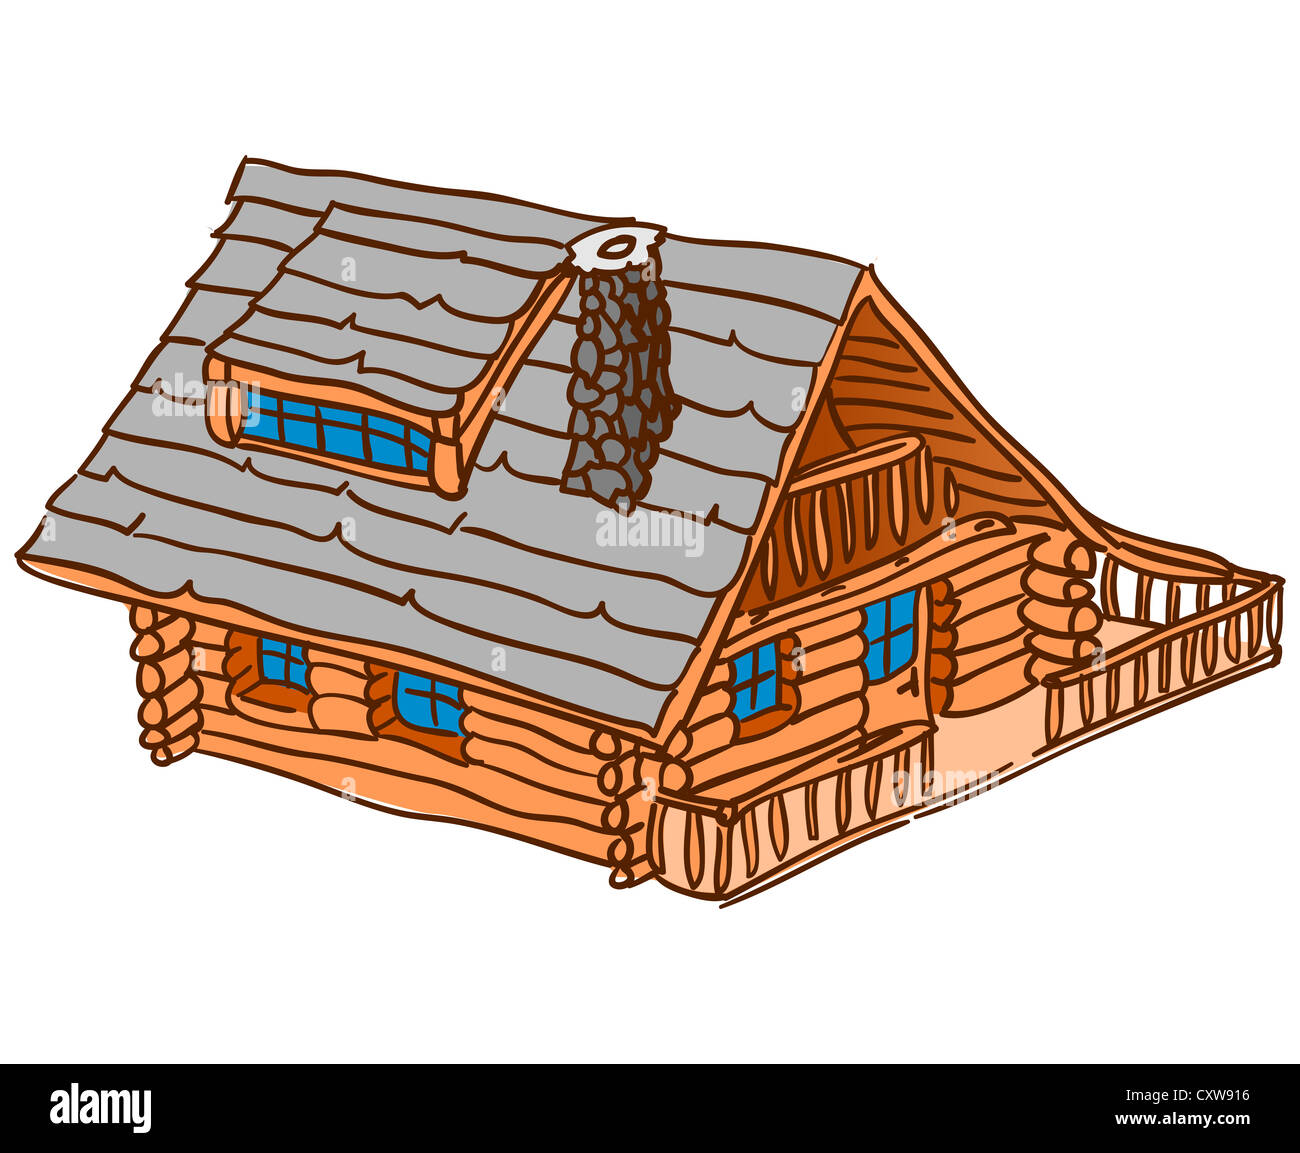 Isolated Wooden Cabin - Stock Image